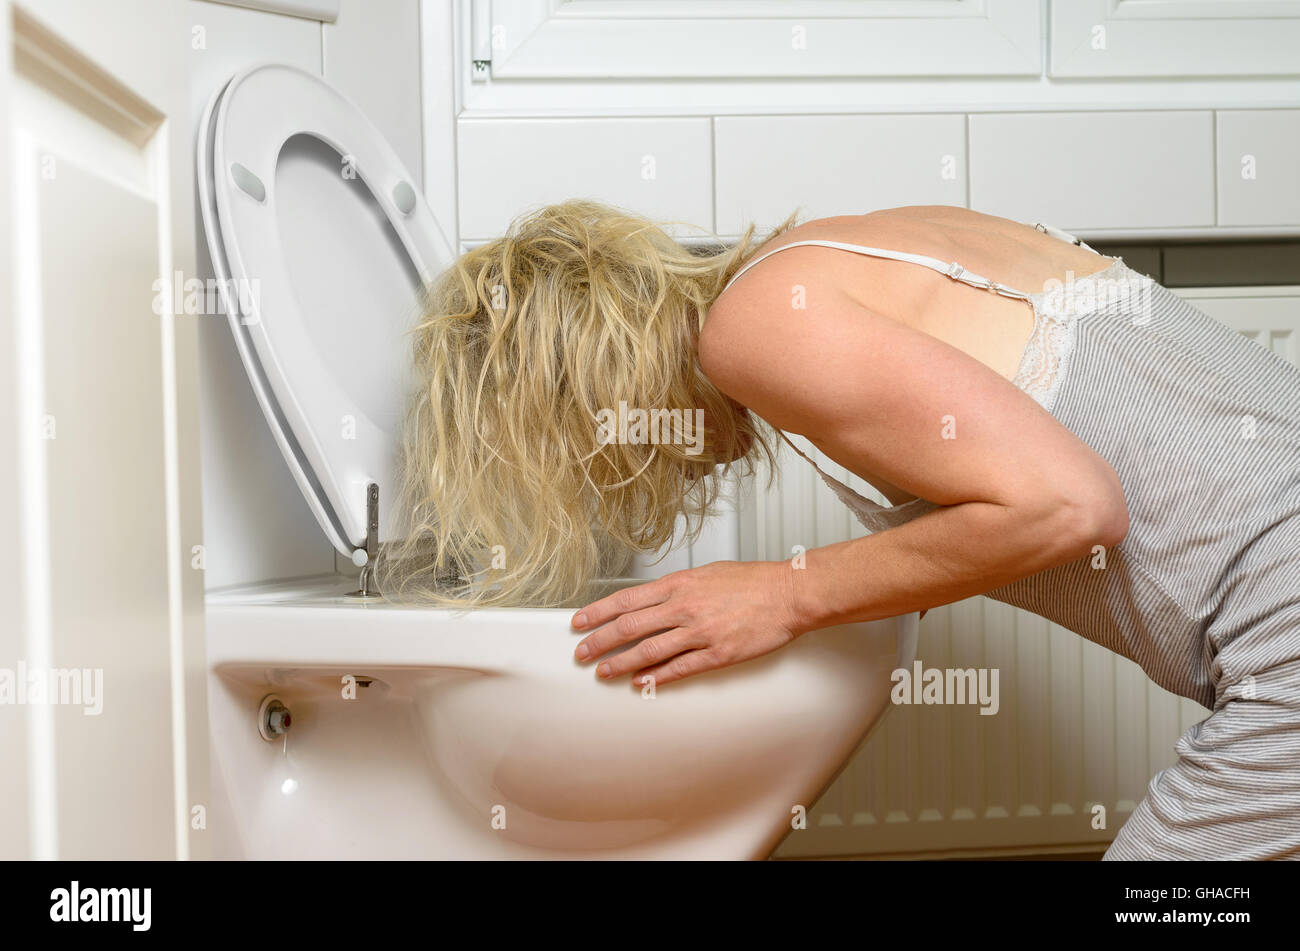 Blond woman in a grey dress kneeling down vomiting into a toilet conceptual of an illness or drunkenness after a Stock Photo